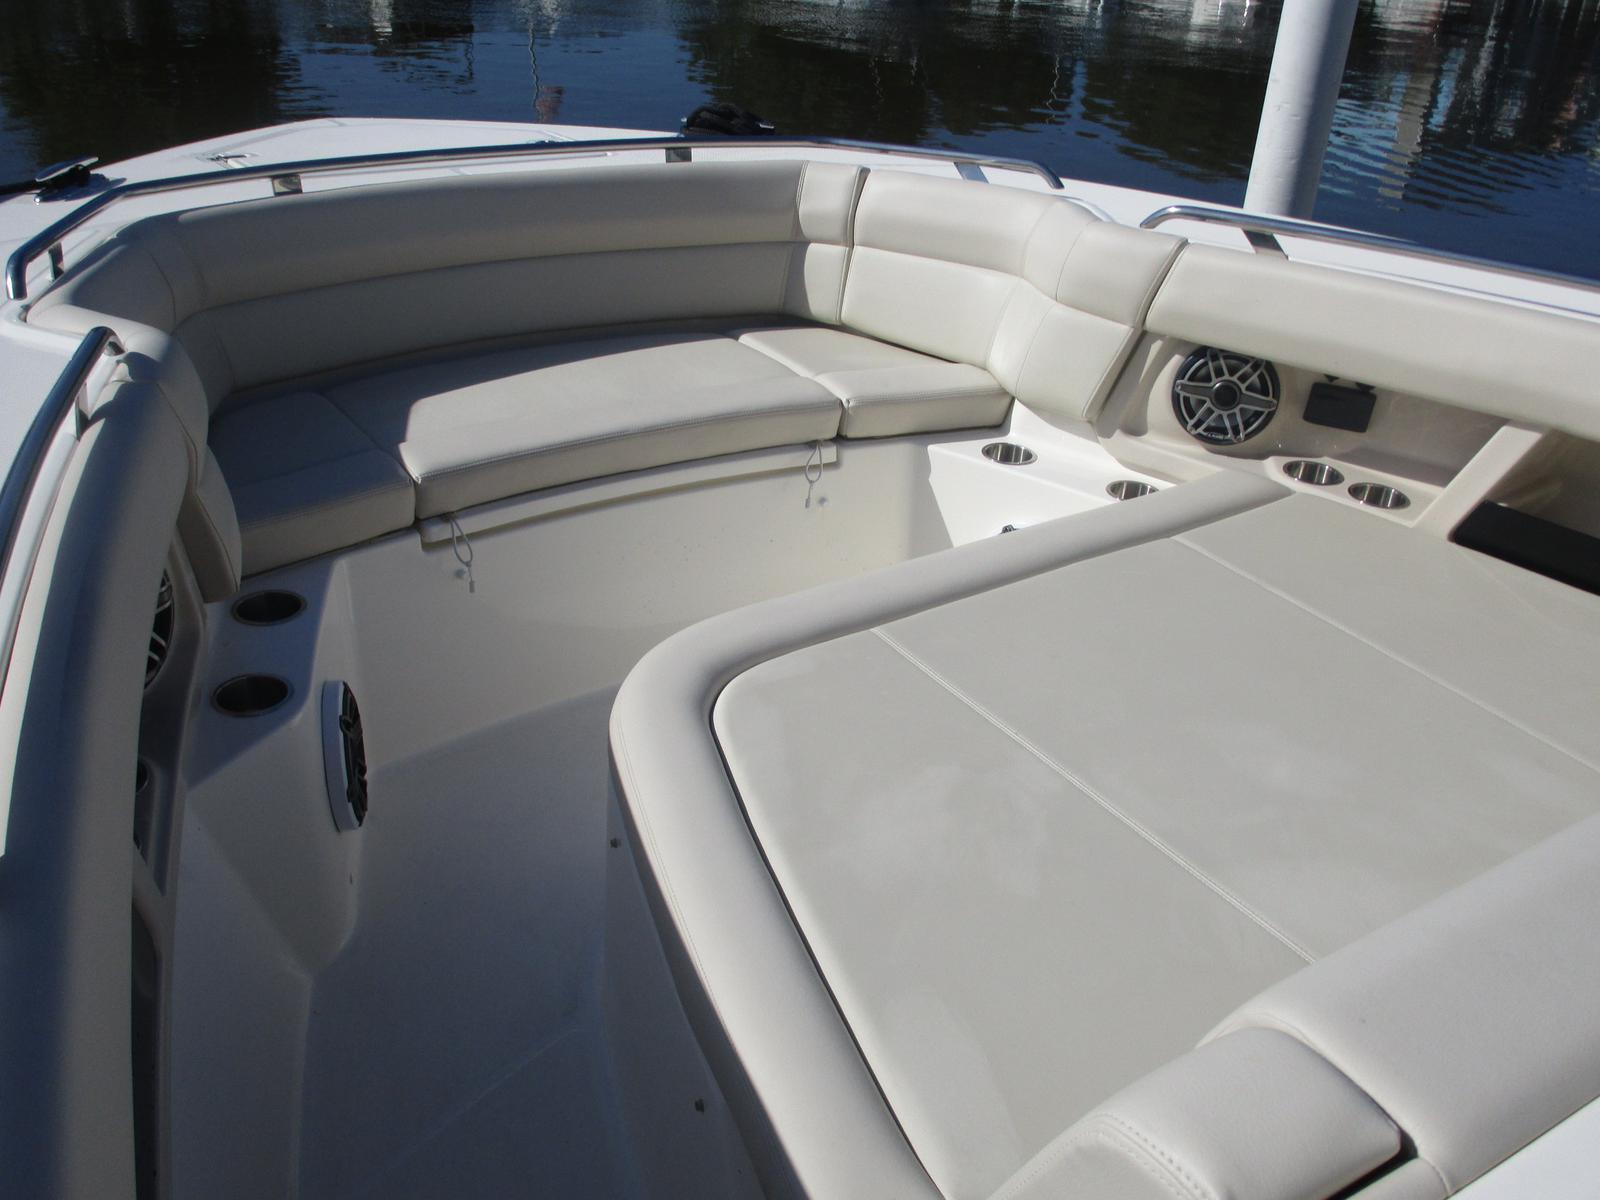 2019 Boston Whaler boat for sale, model of the boat is 350 Realm & Image # 8 of 10